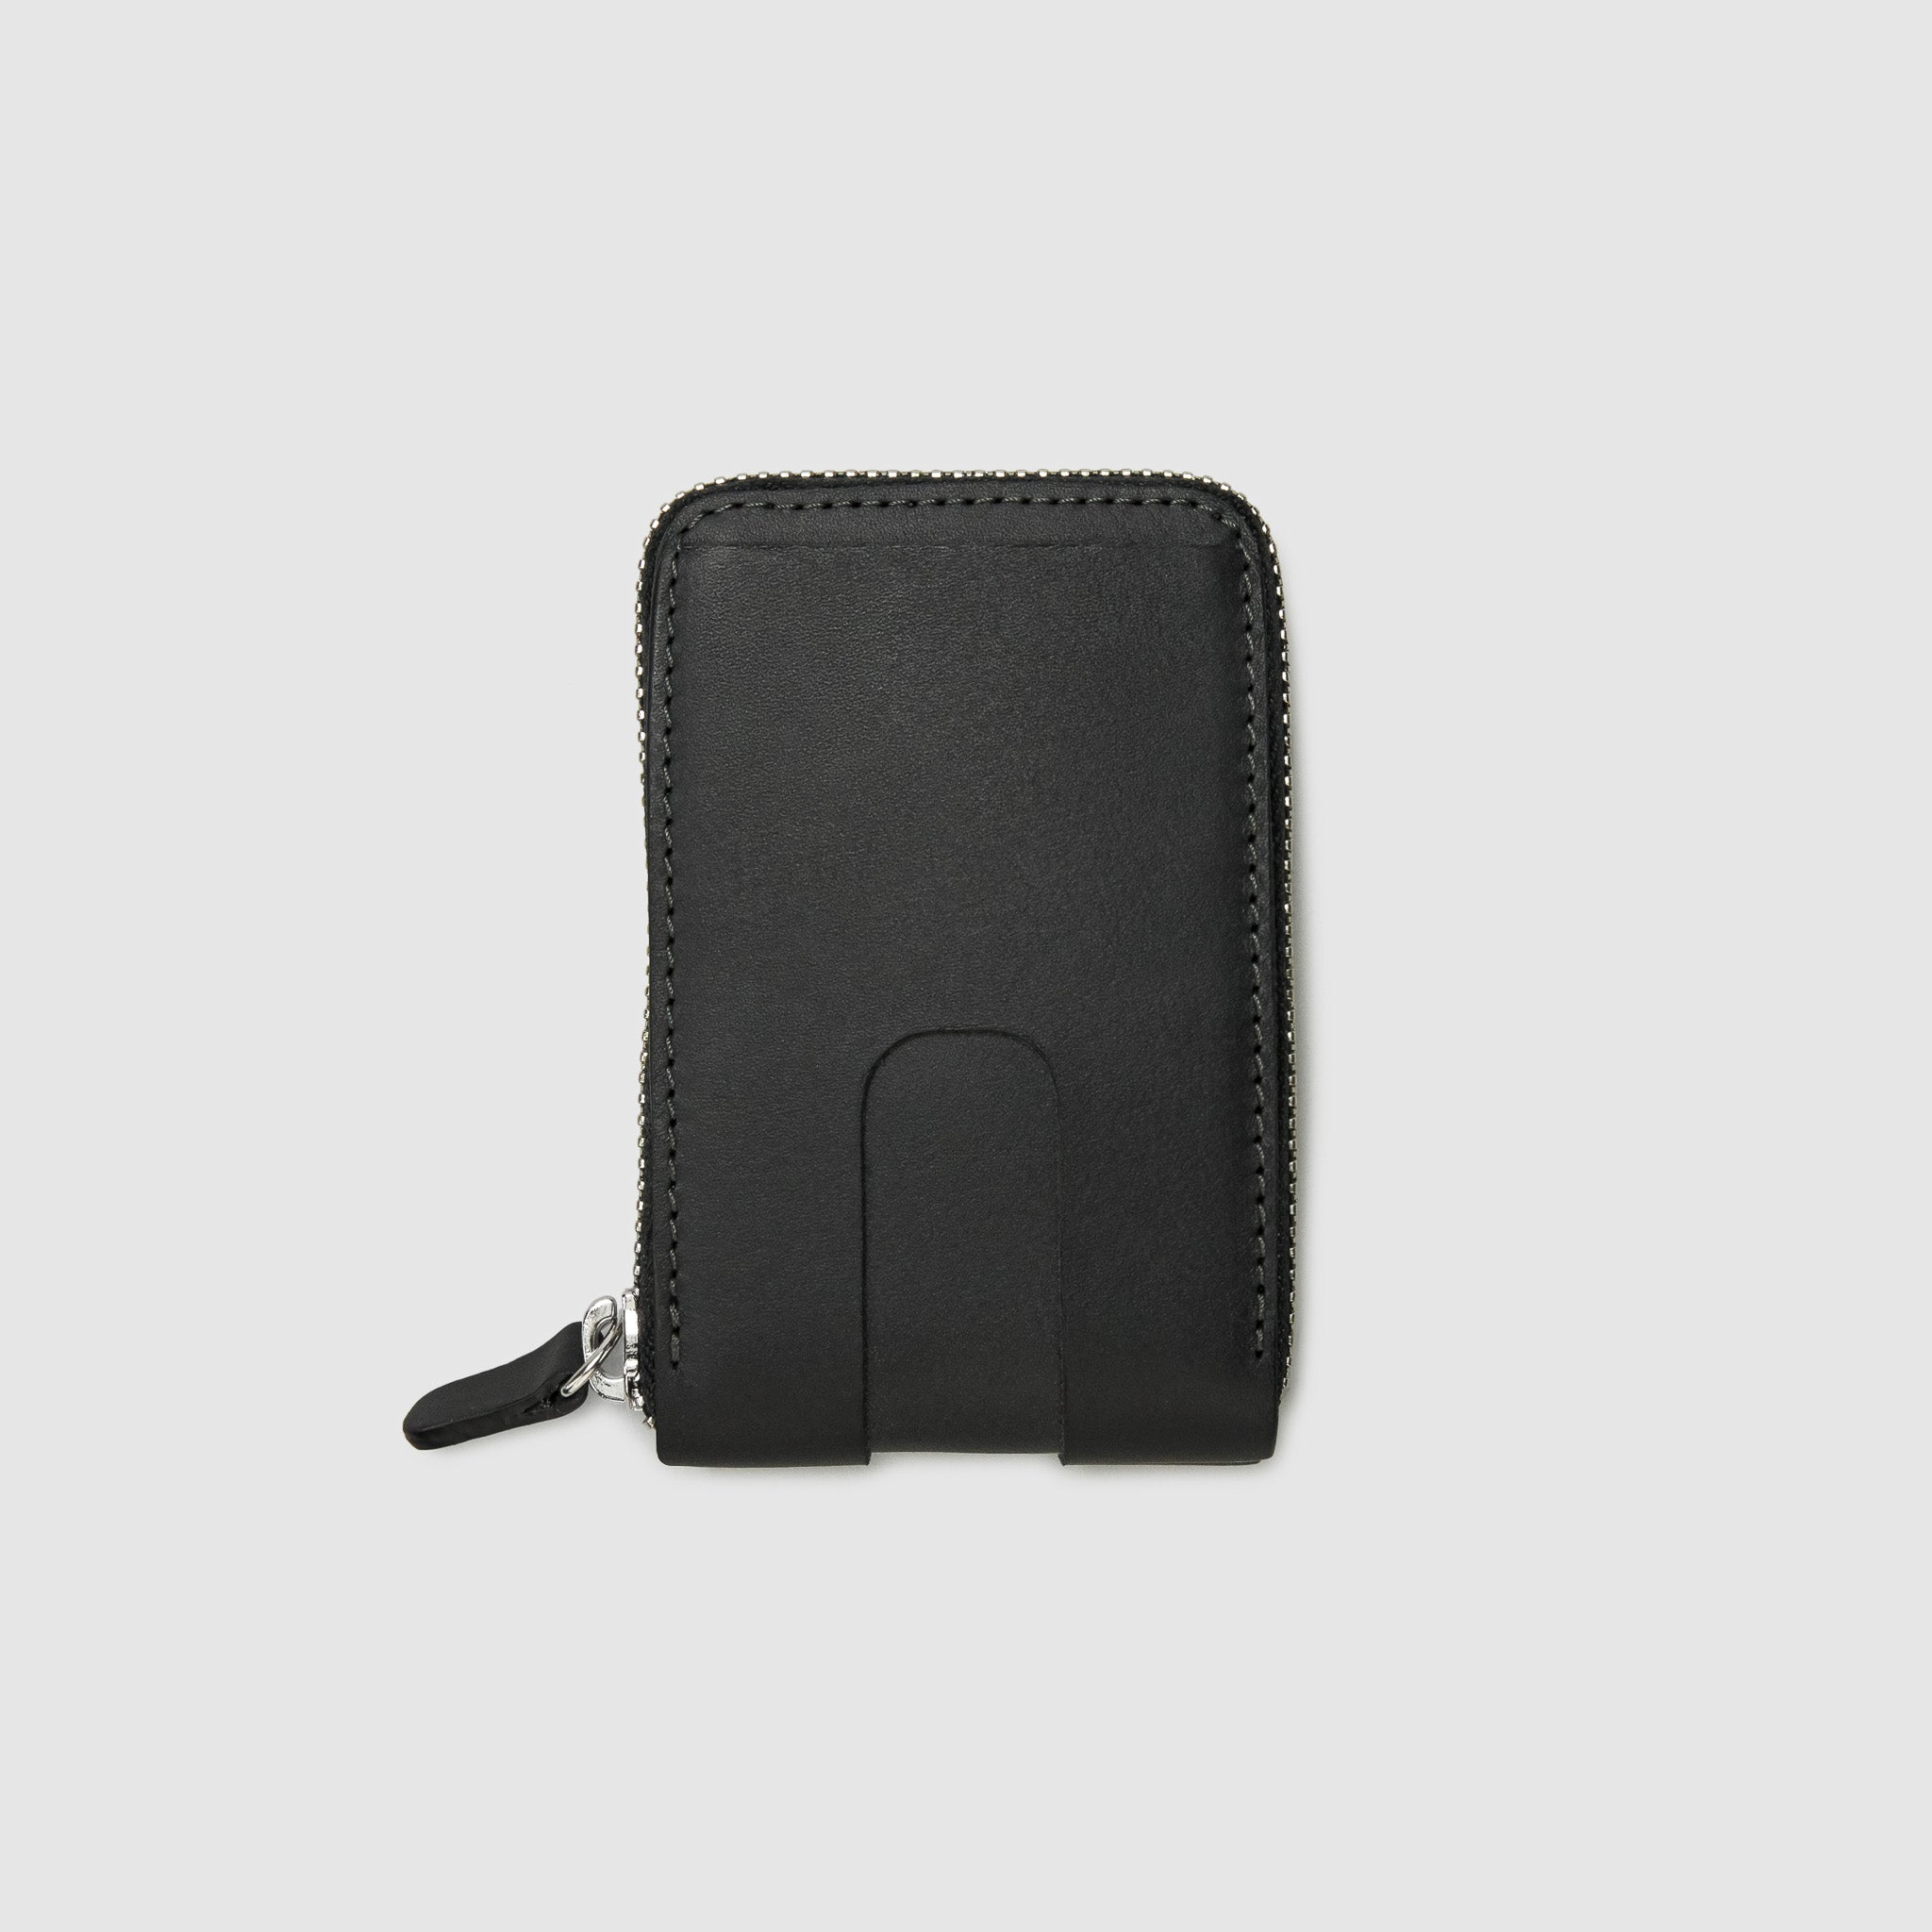 Anson Calder zip-around Wallet with zipper and pockets RFID french calfskin leather _black